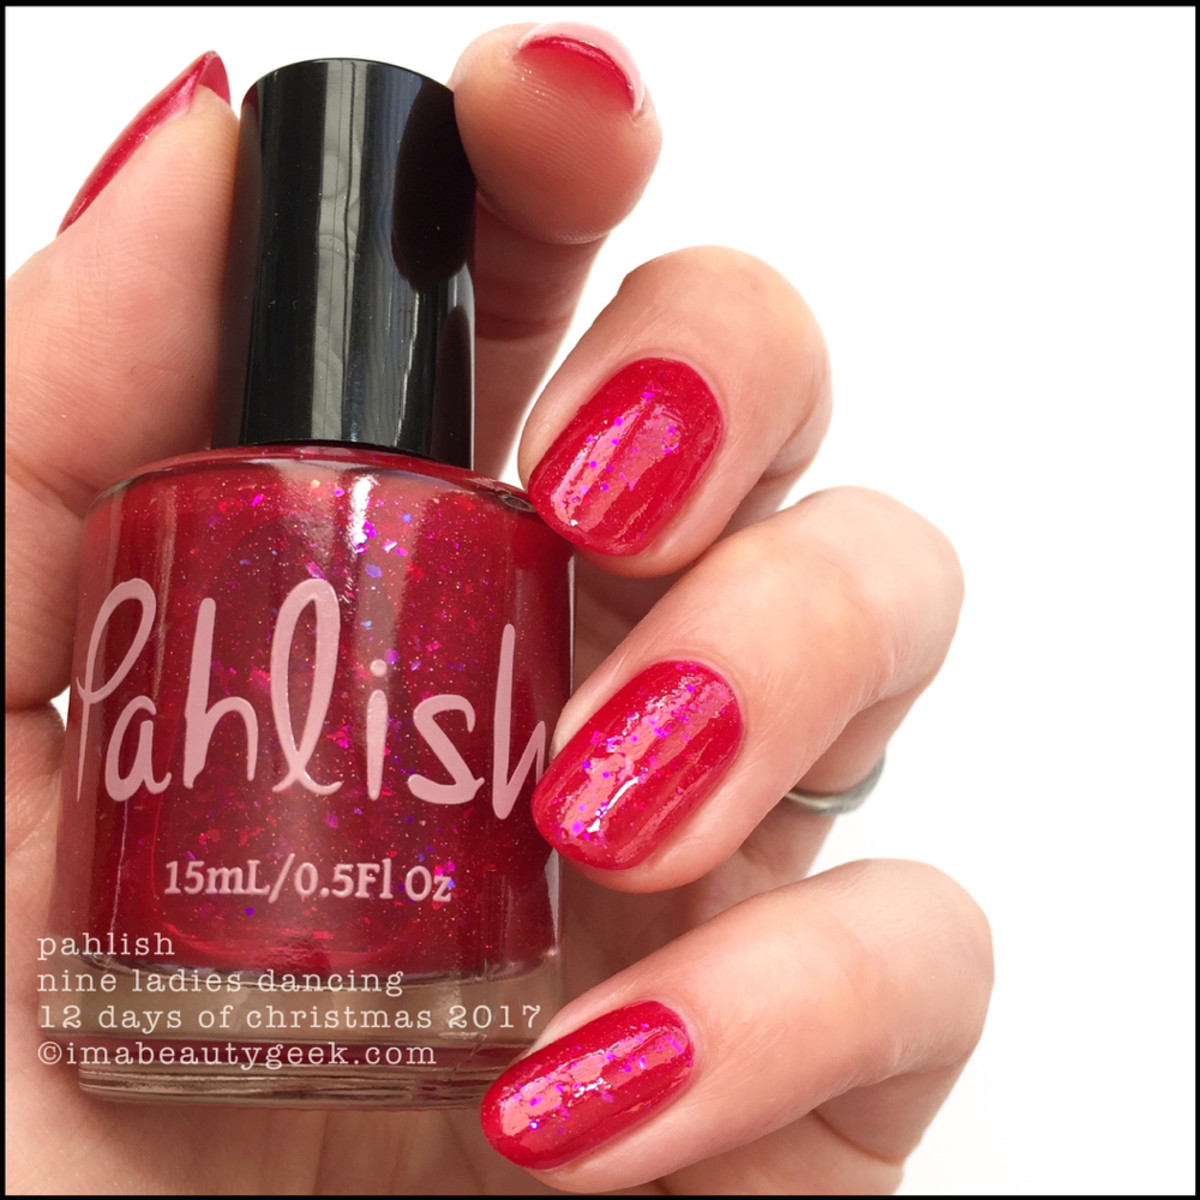 Pahlish Nine Ladies Dancing - Pahlish 12 Days of Christmas 2017 1